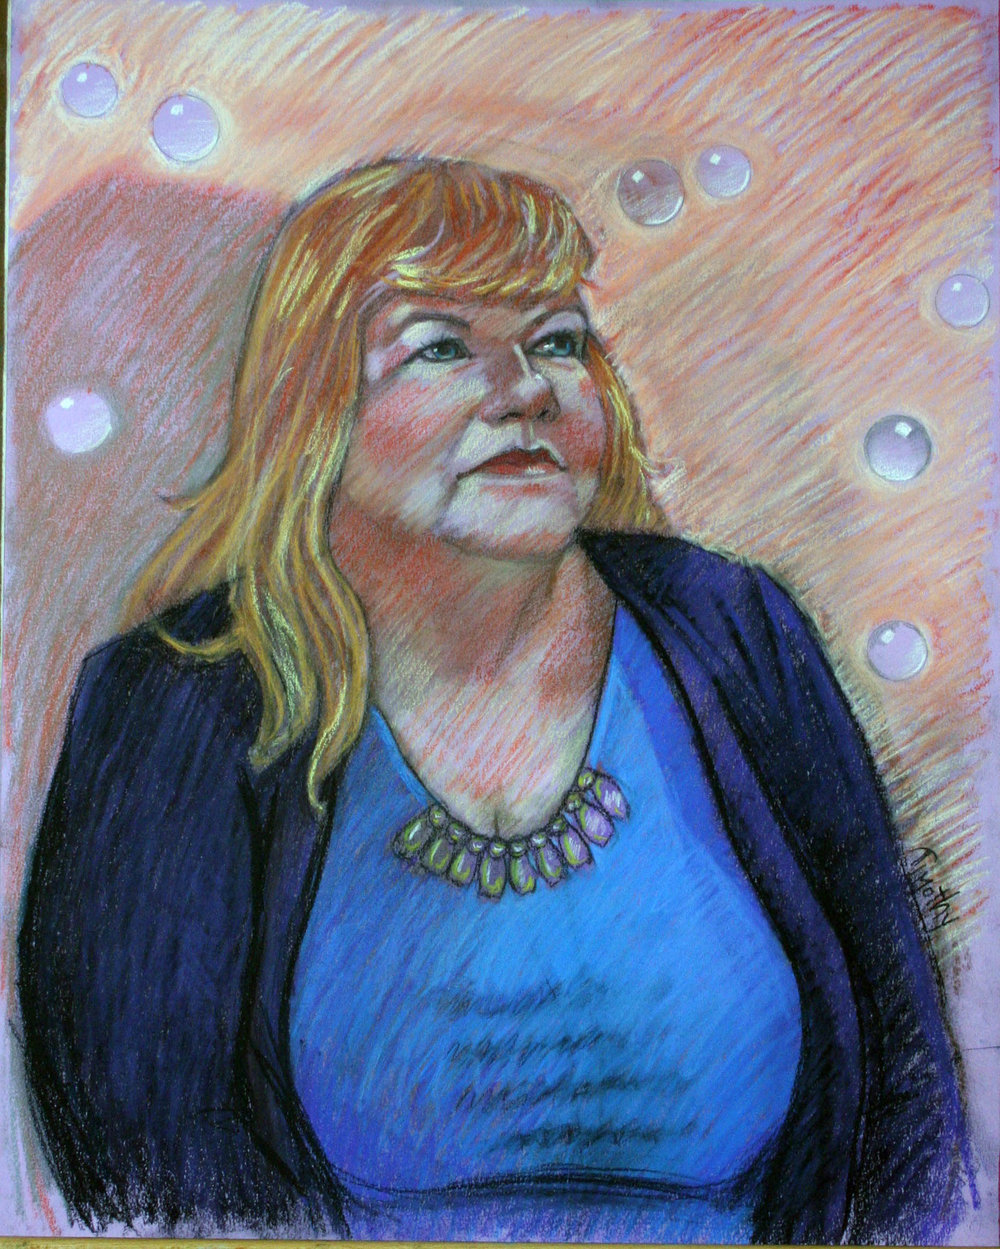 Timothy Herron did this pastel drawing.